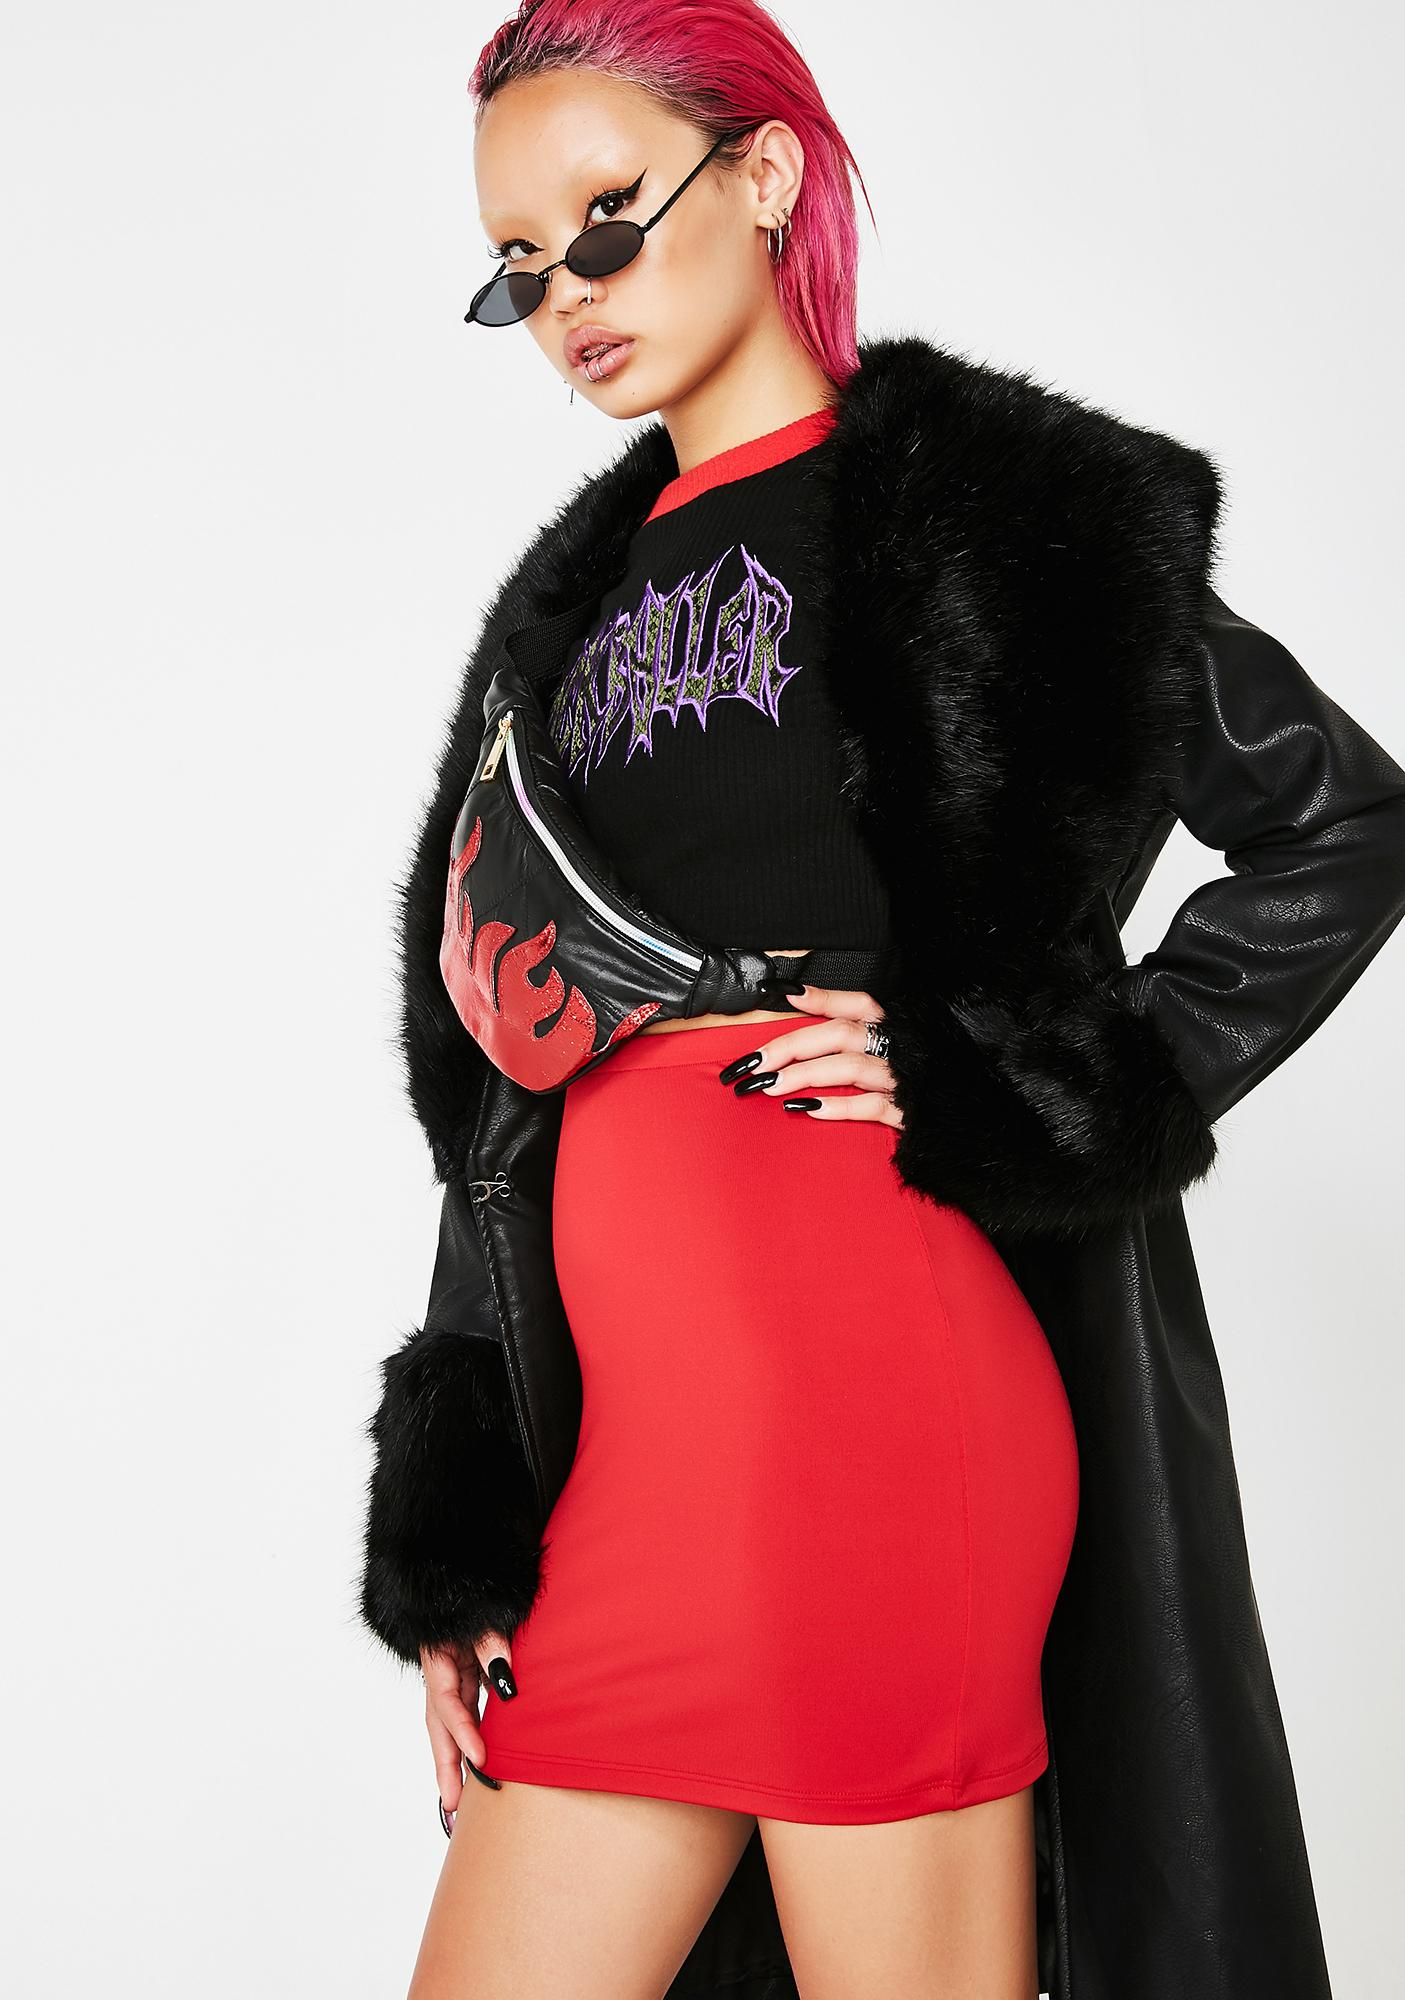 Kiki Riki Slay Machine Mini Skirt